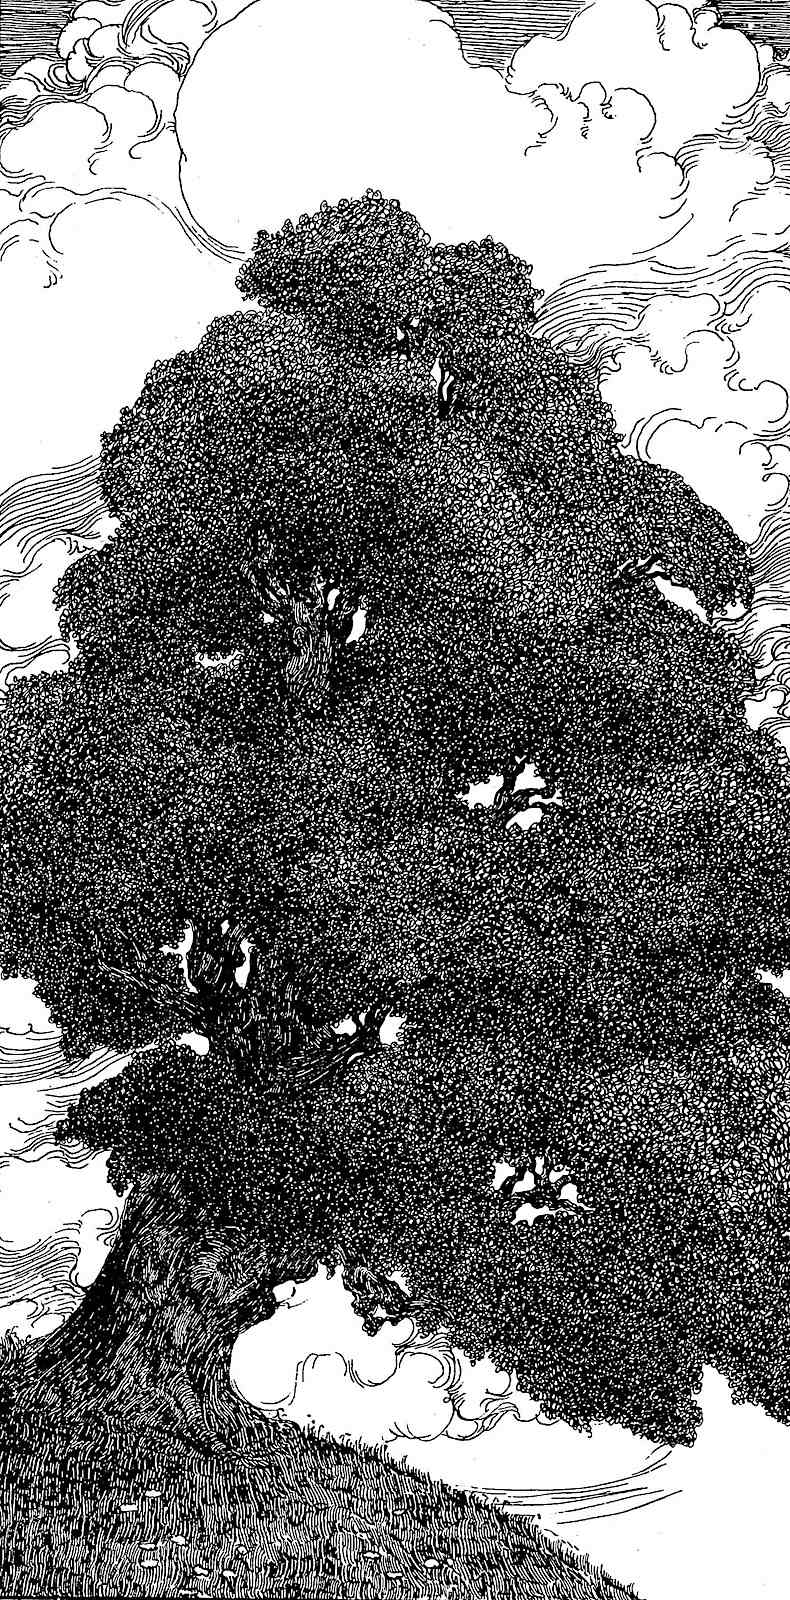 a Willy Pogany illustration of a giant tree on a hill